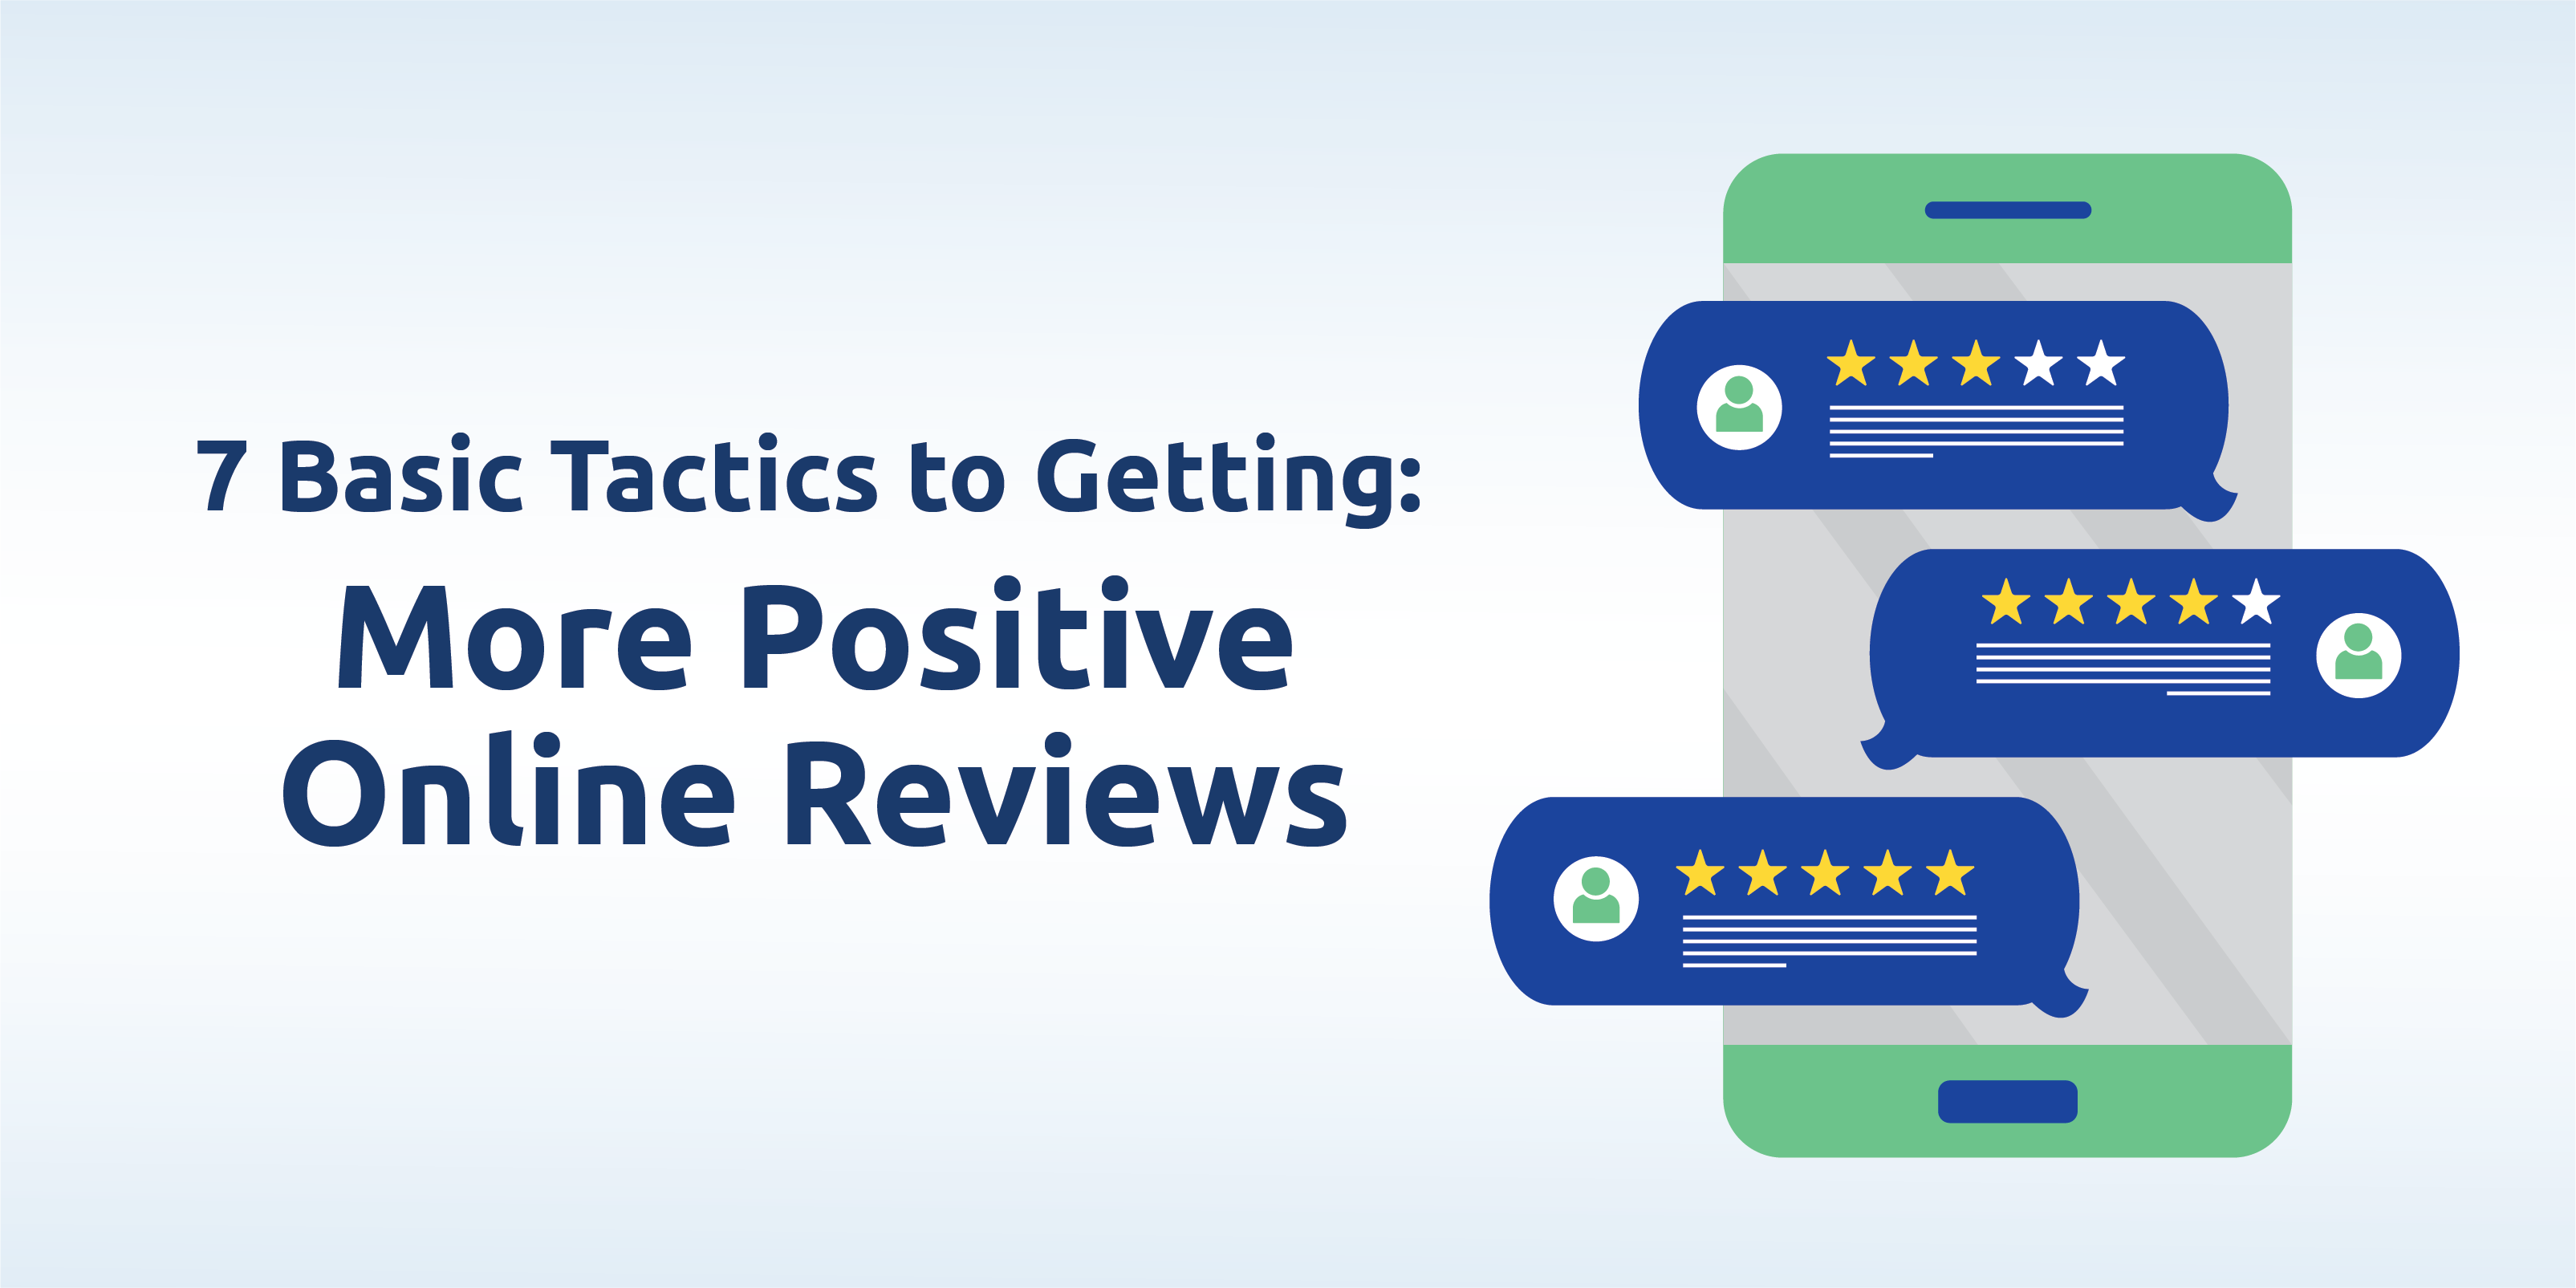 7 Basic Tactics for Getting More Positive Online Reviews